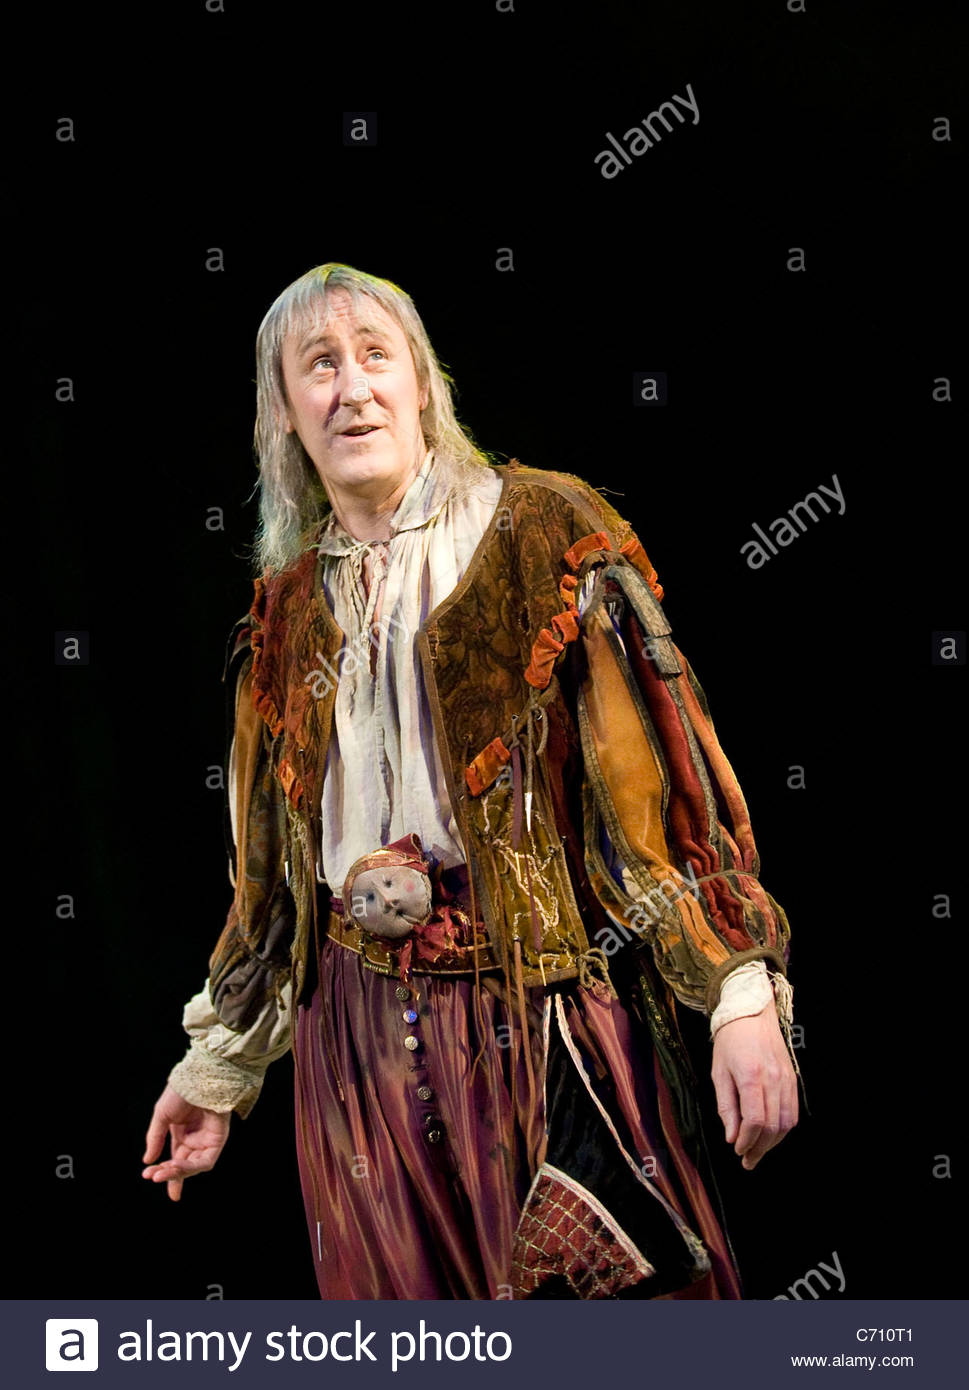 The Tempest by William Shakespeare, directed by Trevor Nunn - Stock Image